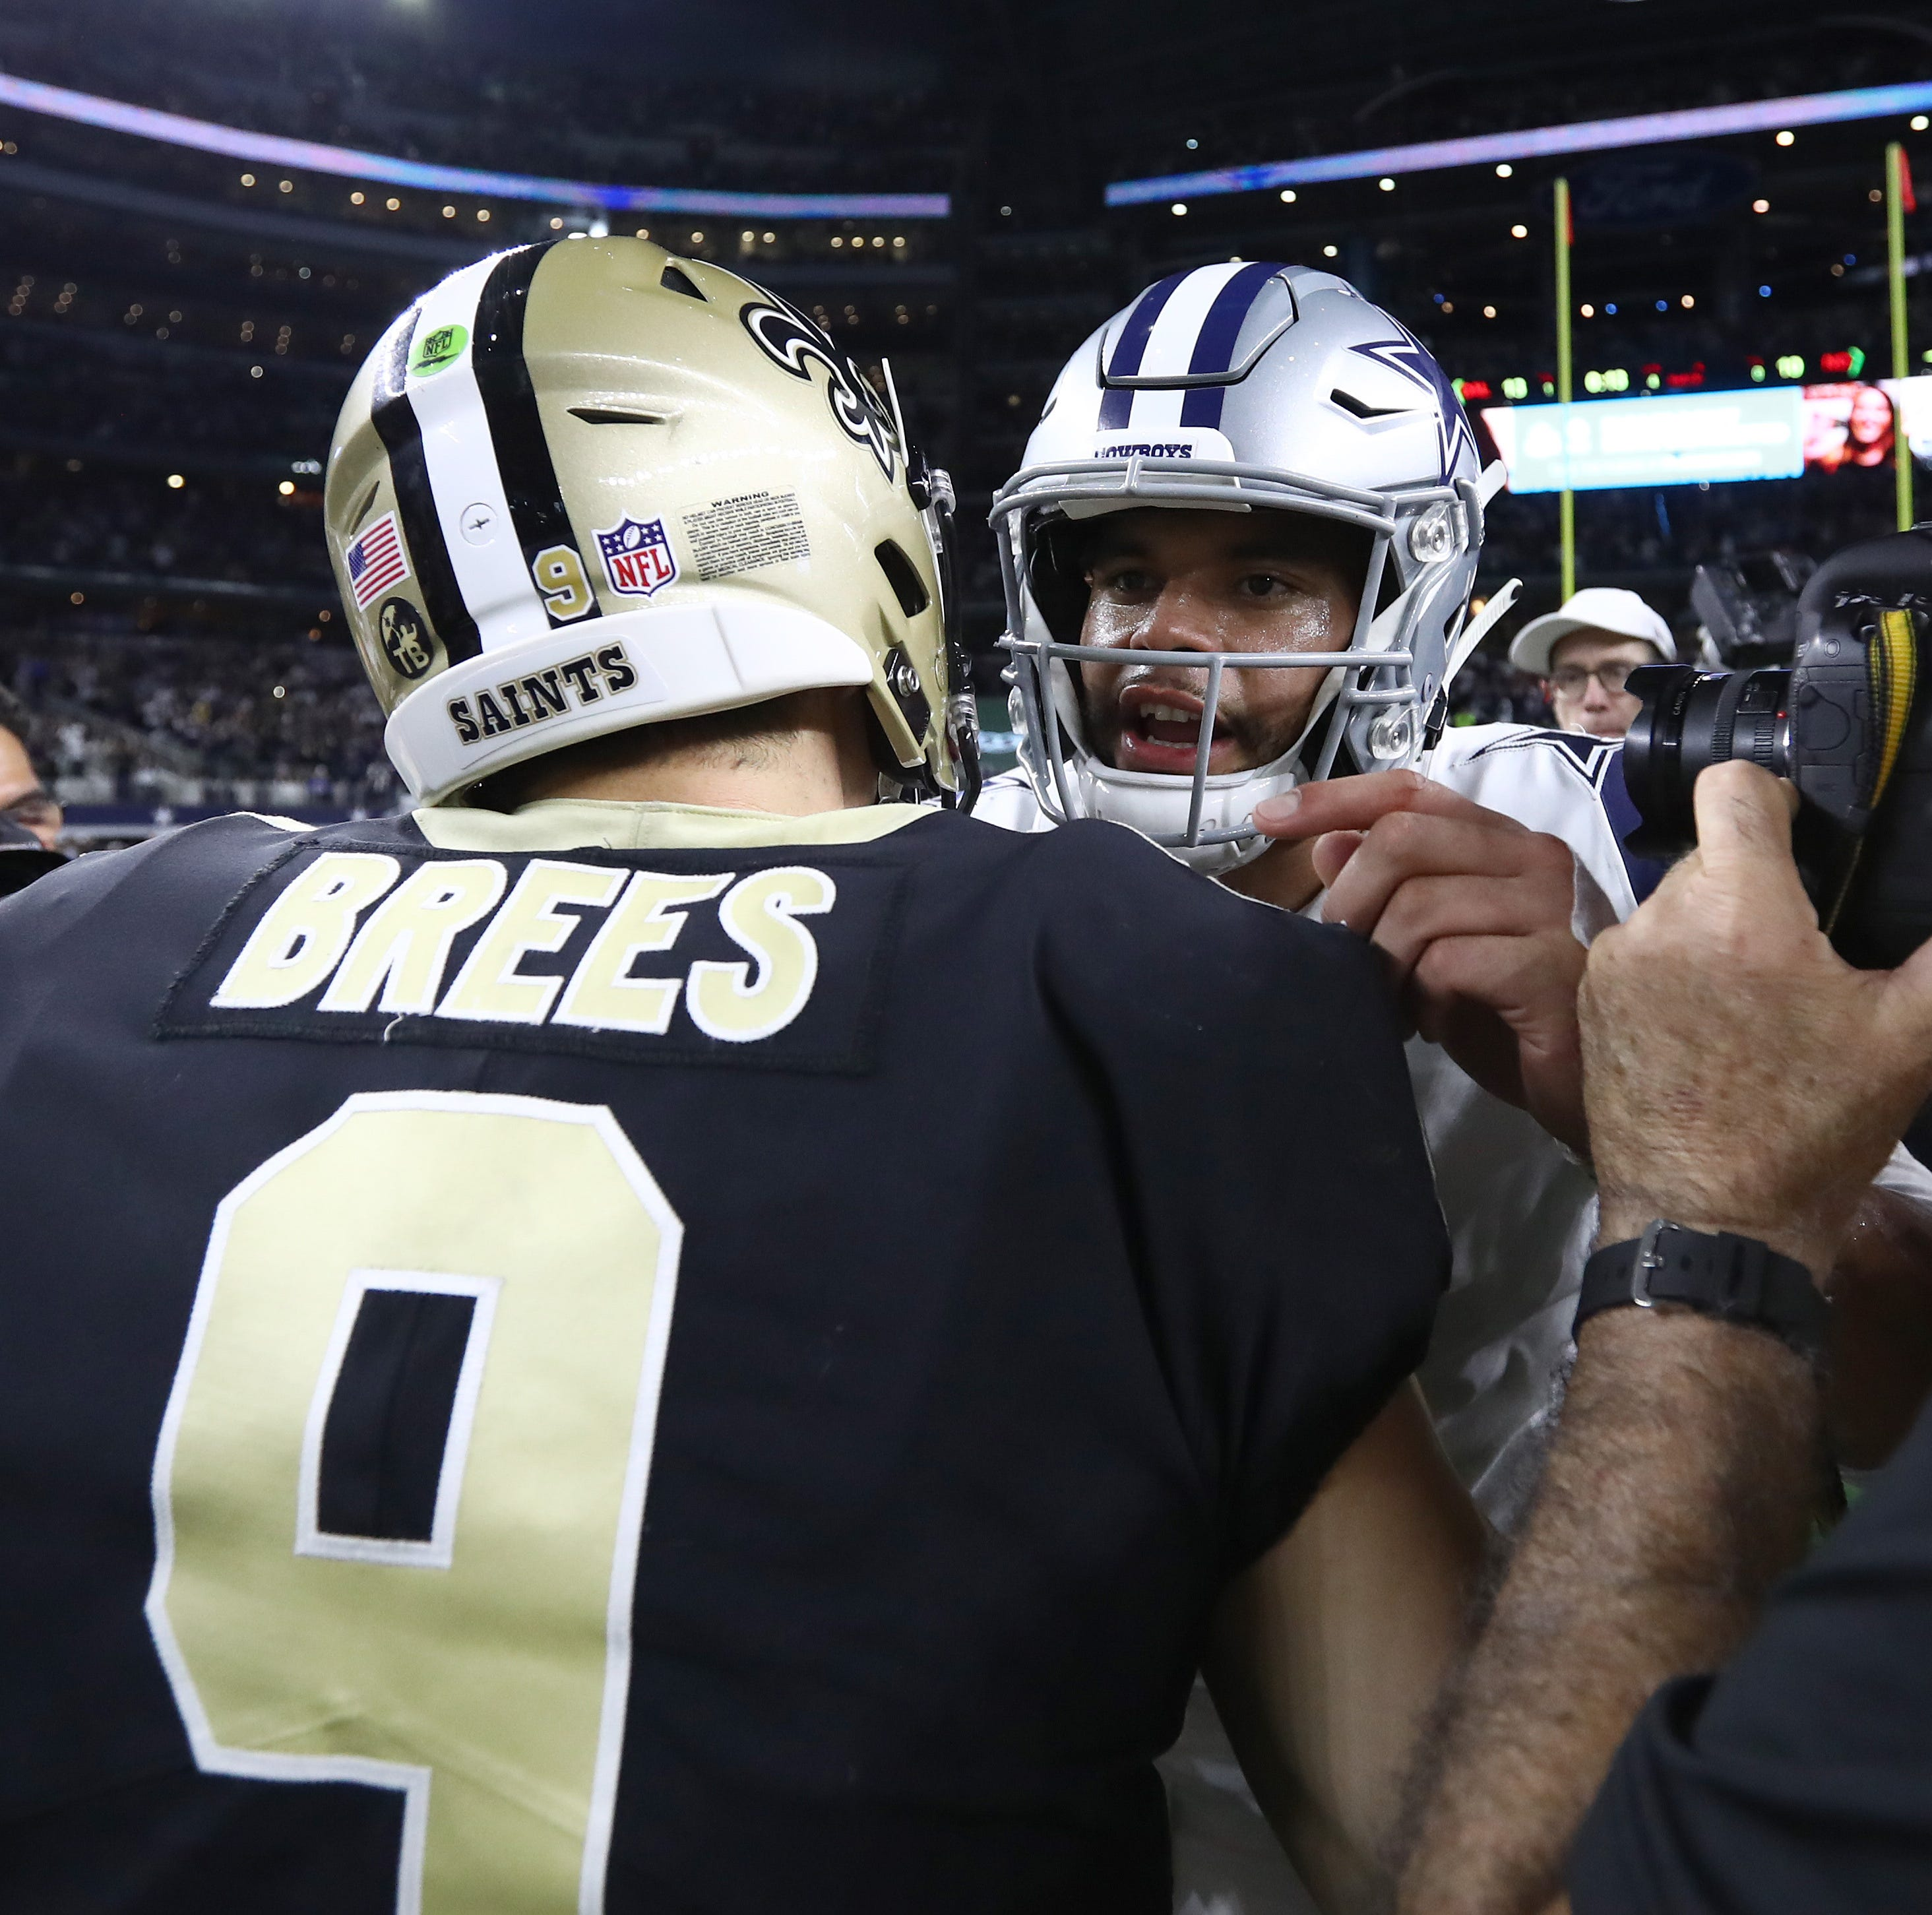 It's a date: Cowboys-Saints set for Sept. 29